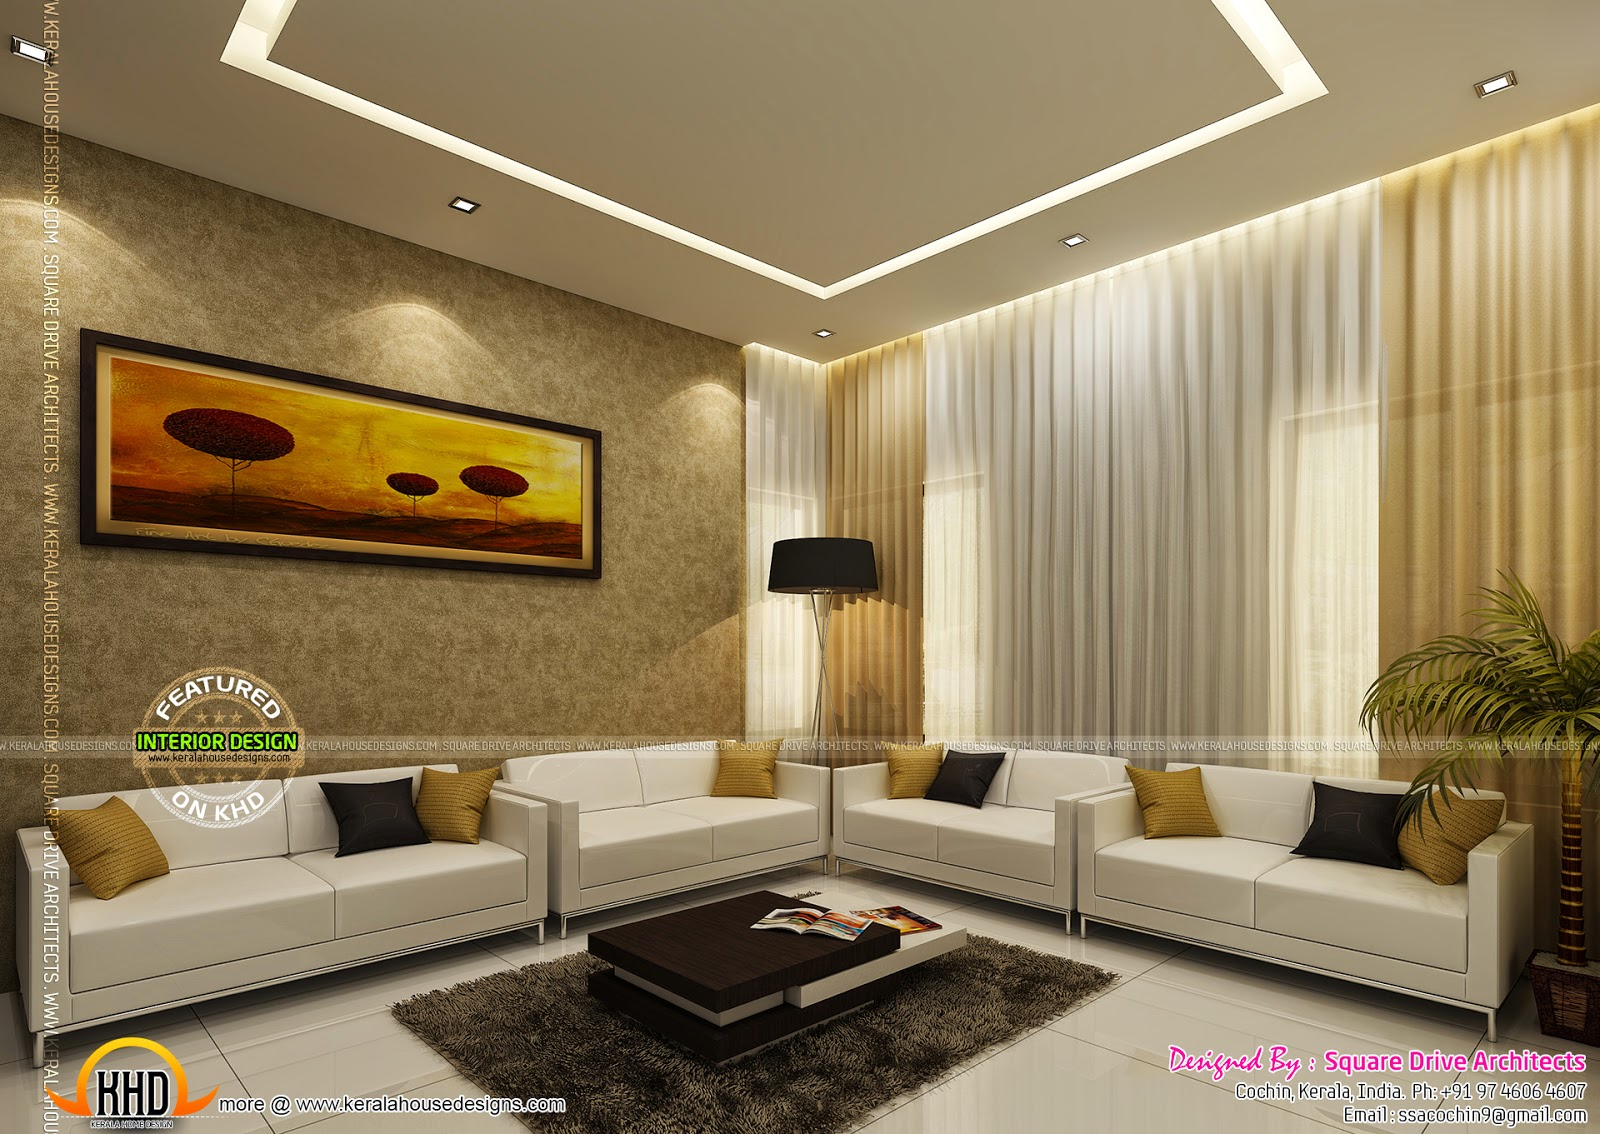 Luxury interior designs in Kerala | keralahousedesigns